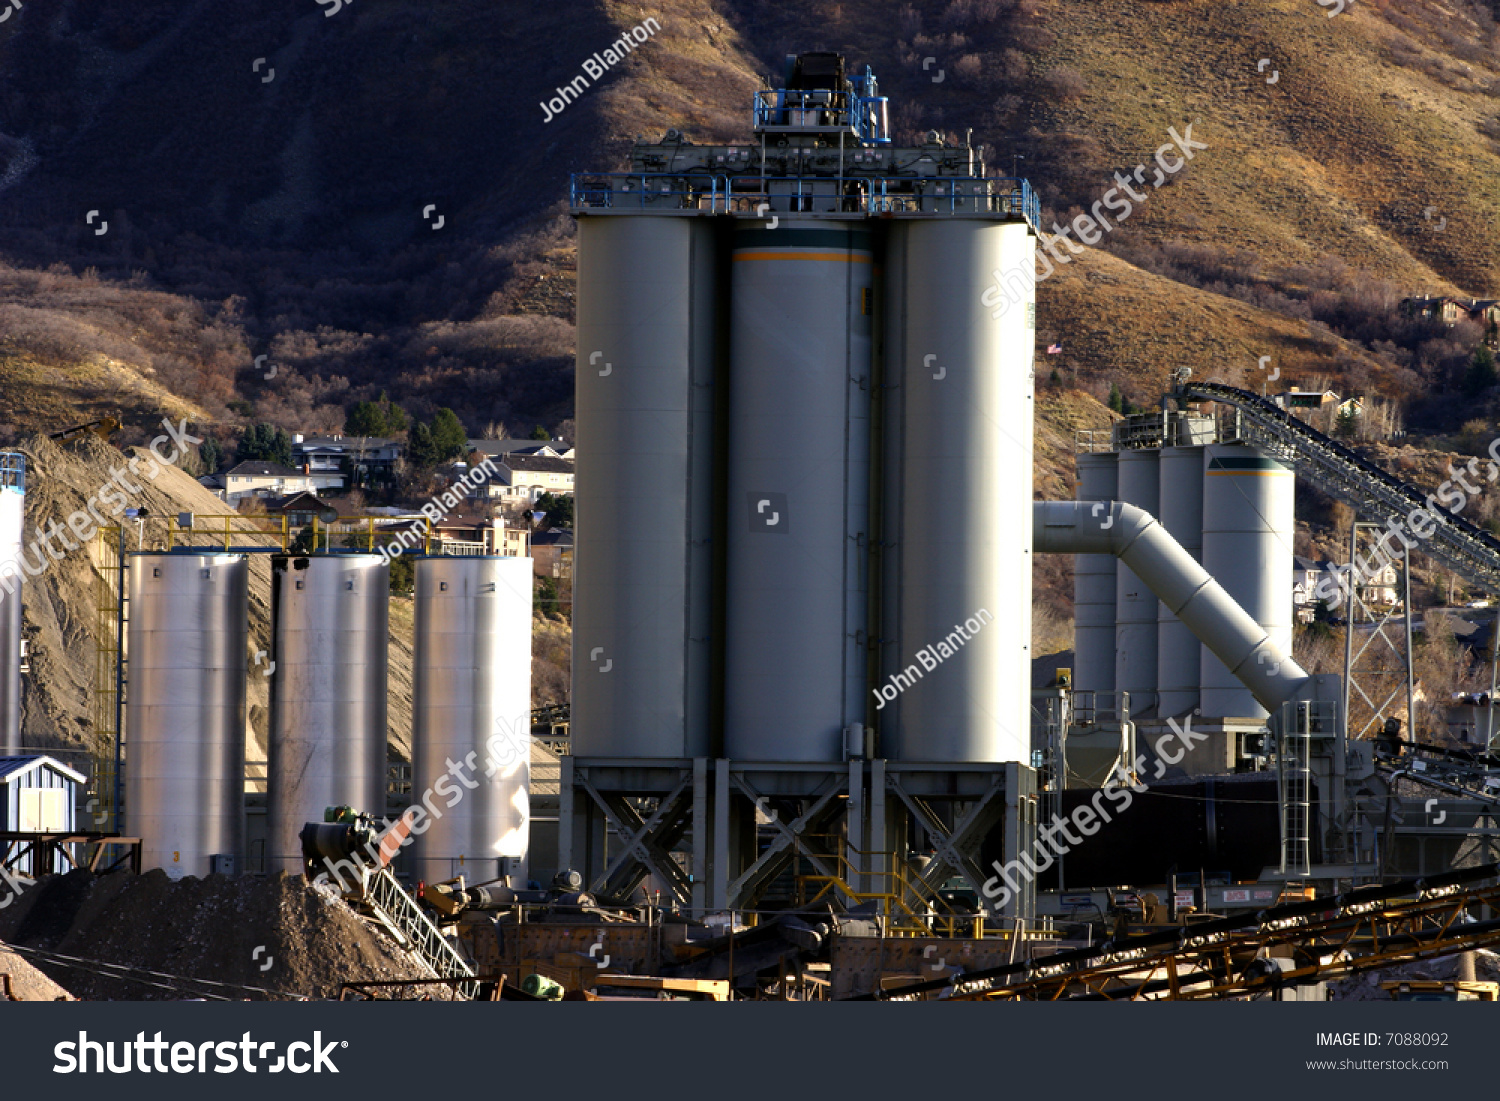 Utah Cement Plants : Extensive concrete manufacturing plant in utah with